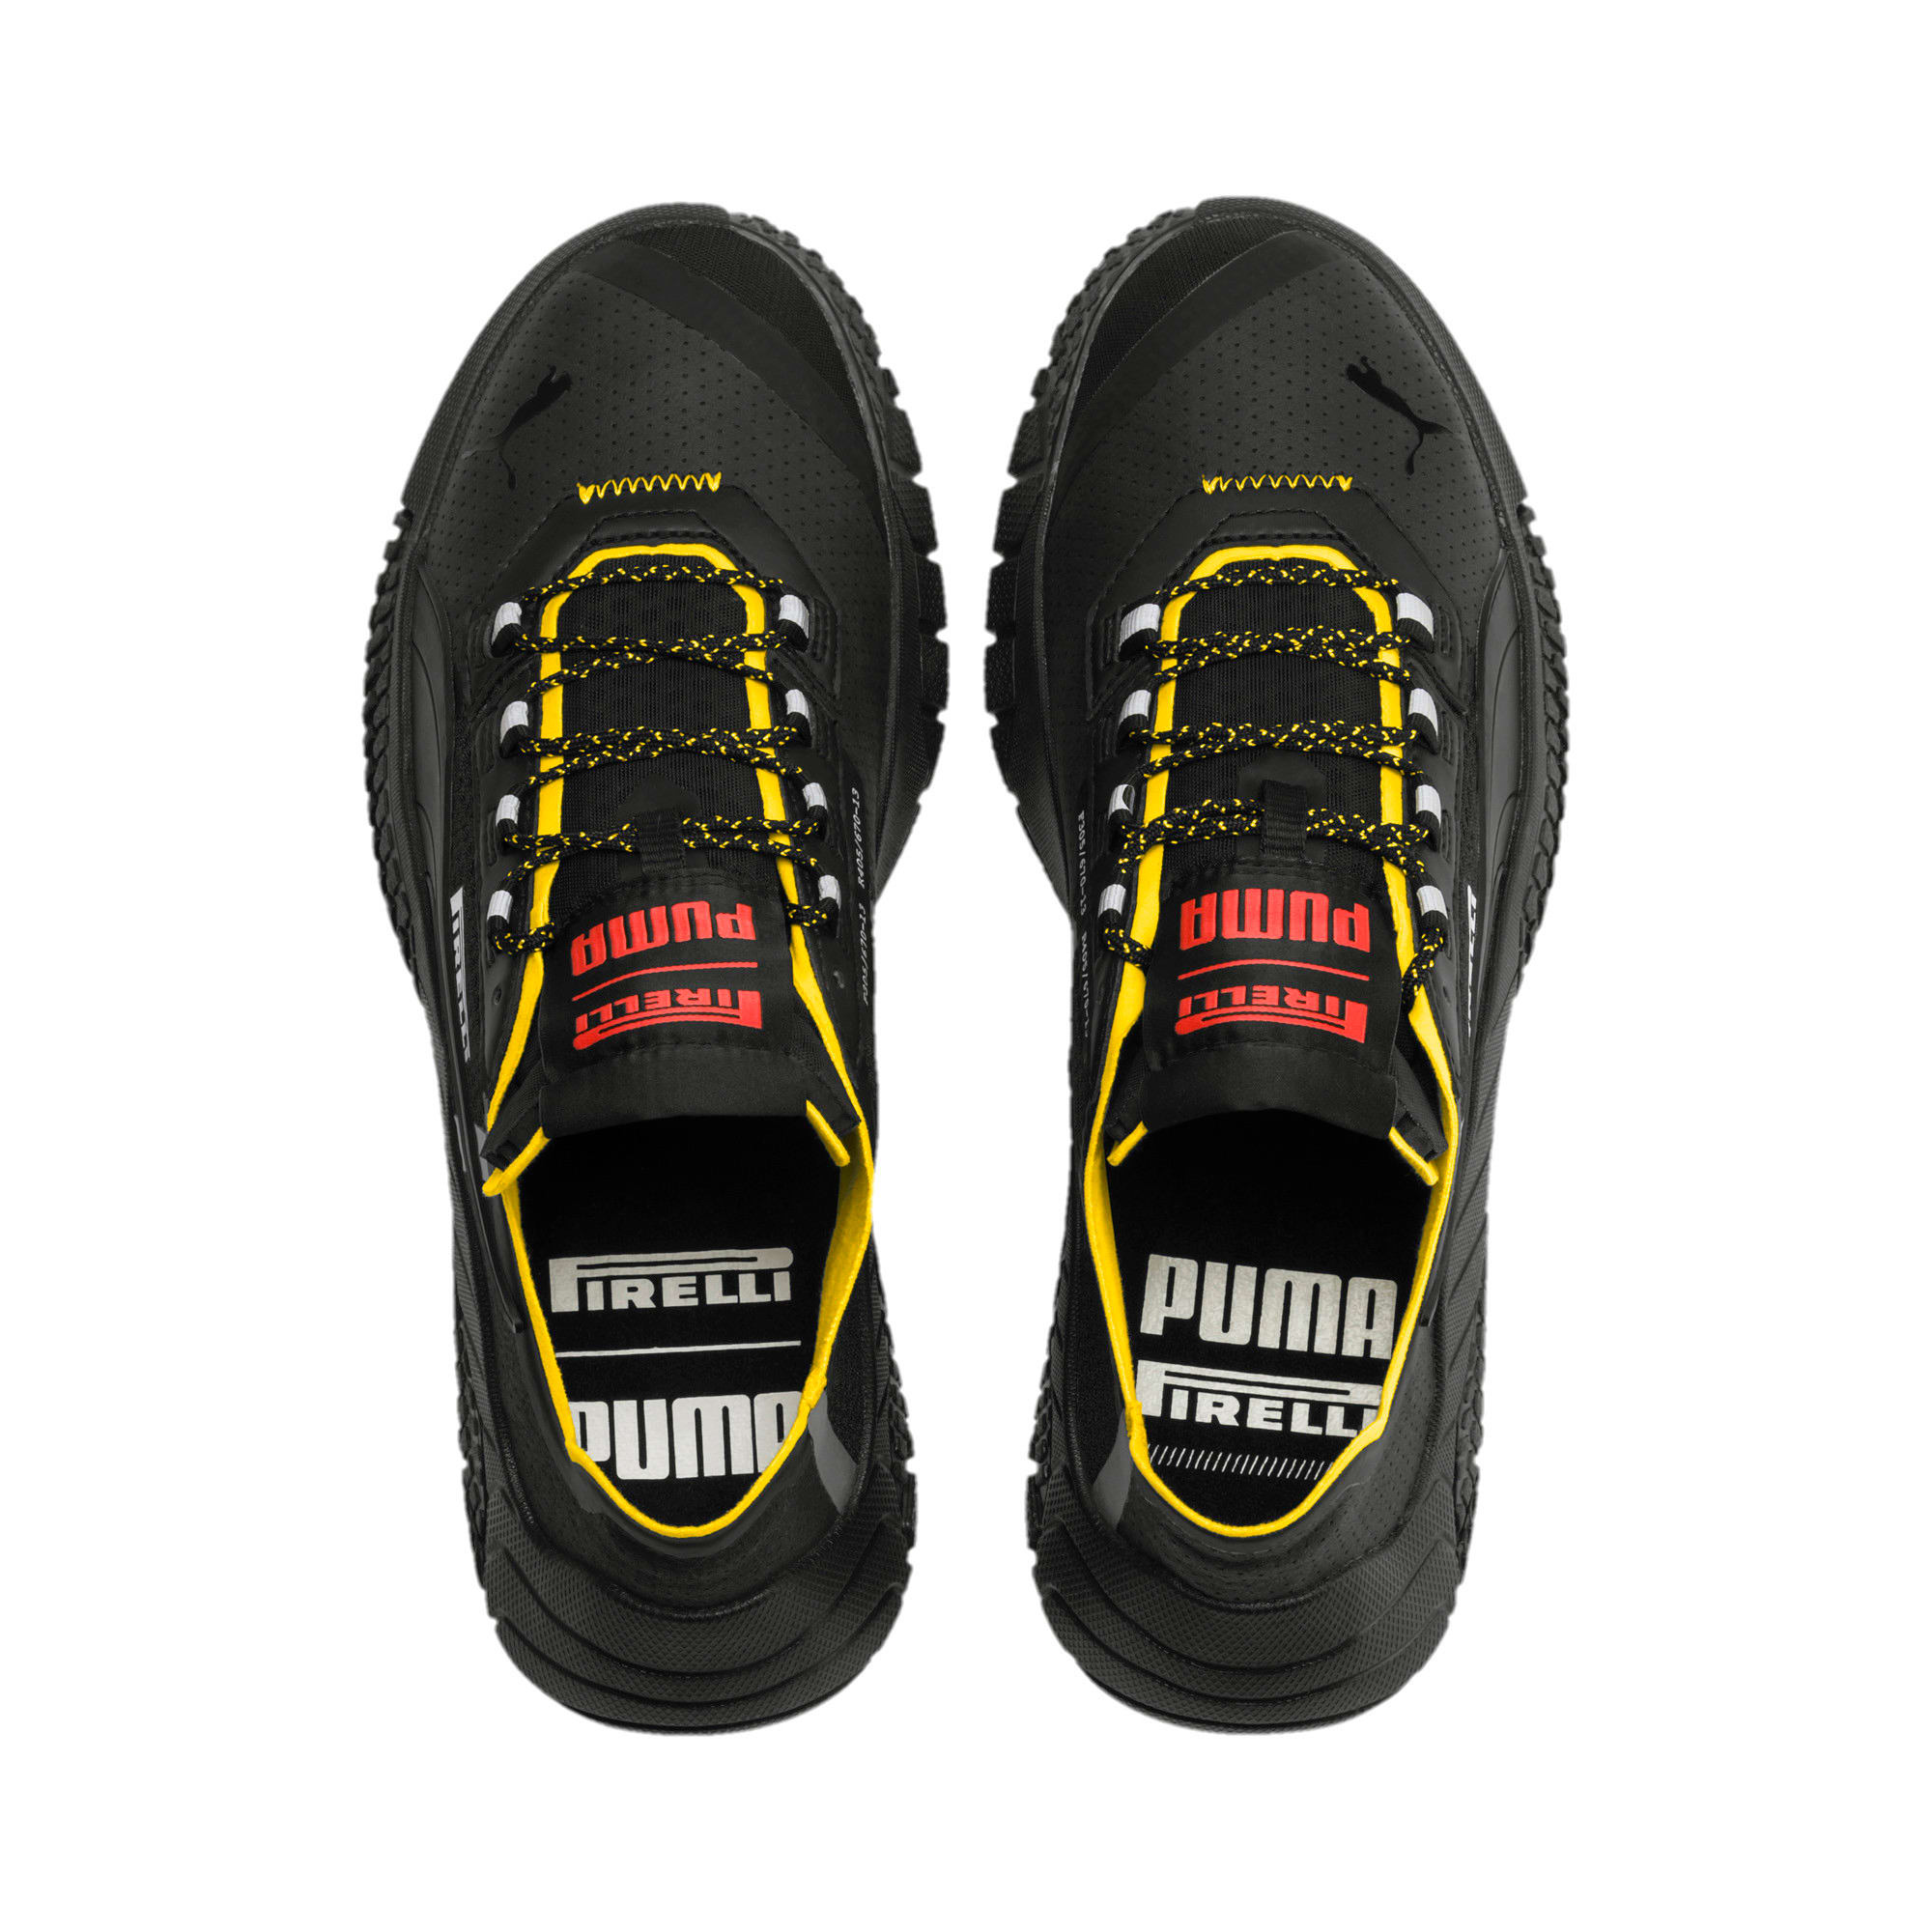 Zapatos Replicat-X Pirelli Motorsport, Black-Black-Cyber Yellow, grande